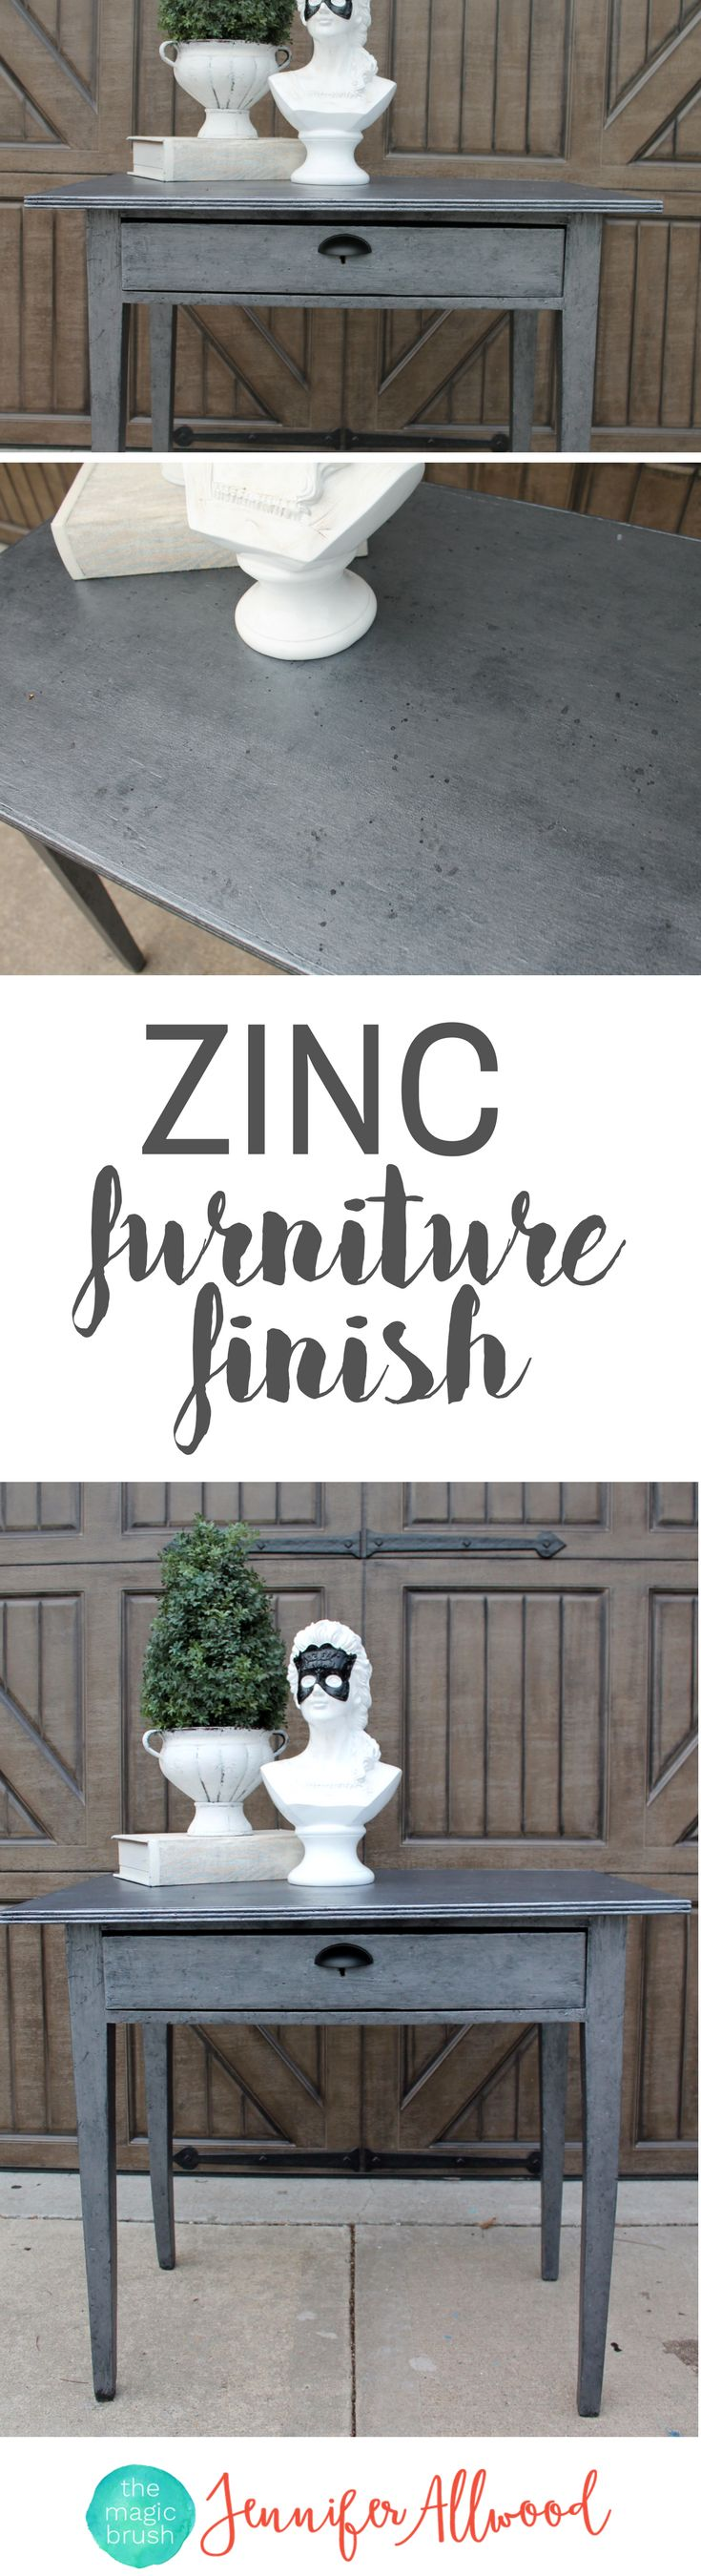 Faux painting furniture ideas - Best 25 Silver Painted Furniture Ideas On Pinterest Metallic Paint Silver Metallic Paint And Different Types Of Painting